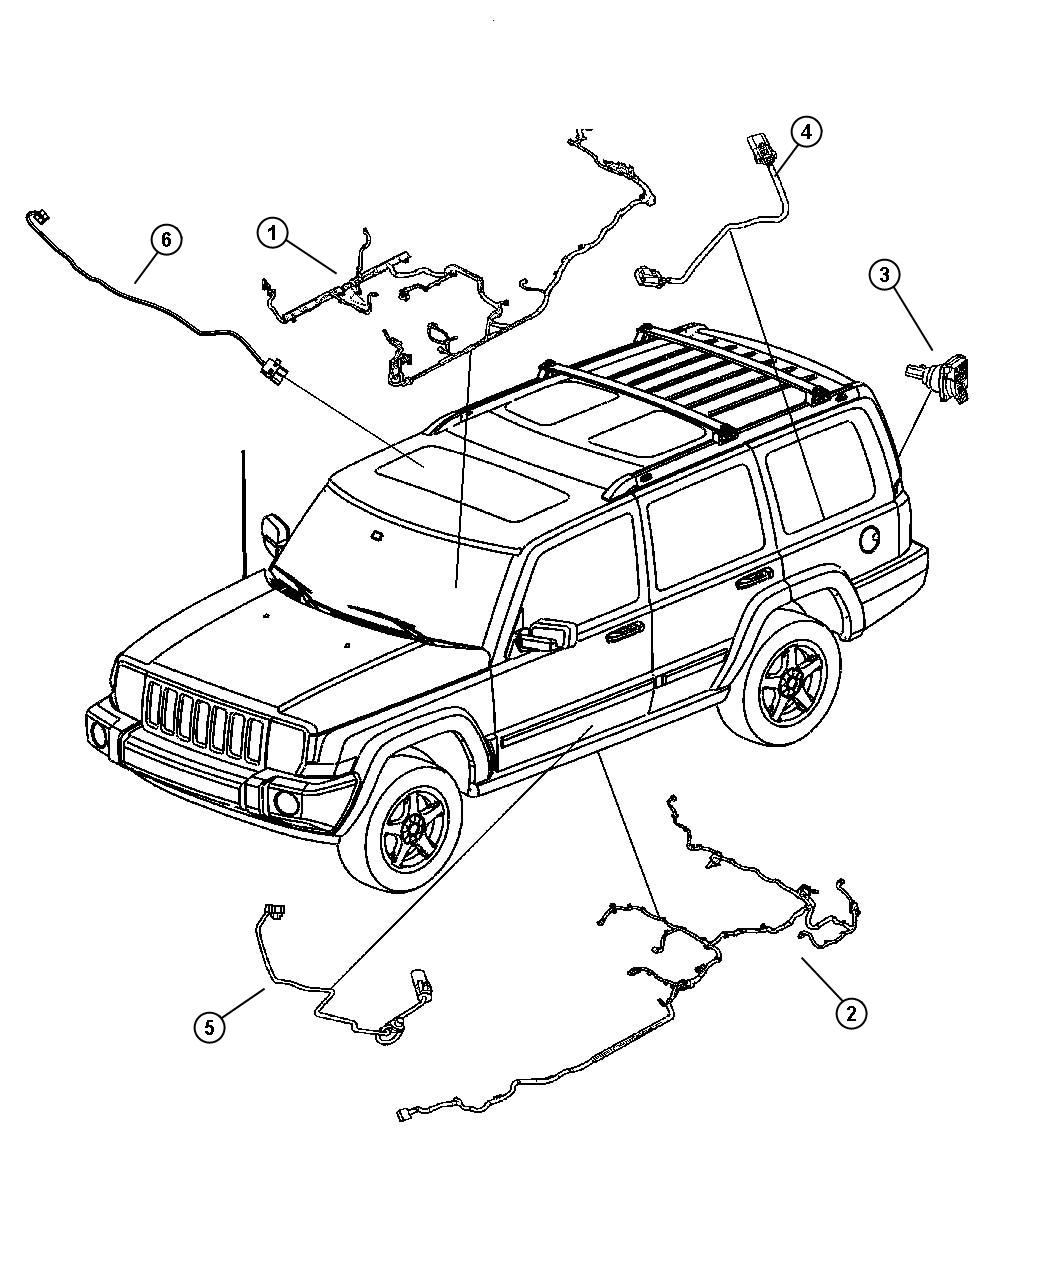 jeep commander repair manual 2007 2010 auto electrical 2007 jeep commander wiring diagram 2007 jeep commander wiring diagram 2007 jeep commander wiring diagram 2007 jeep commander wiring diagram